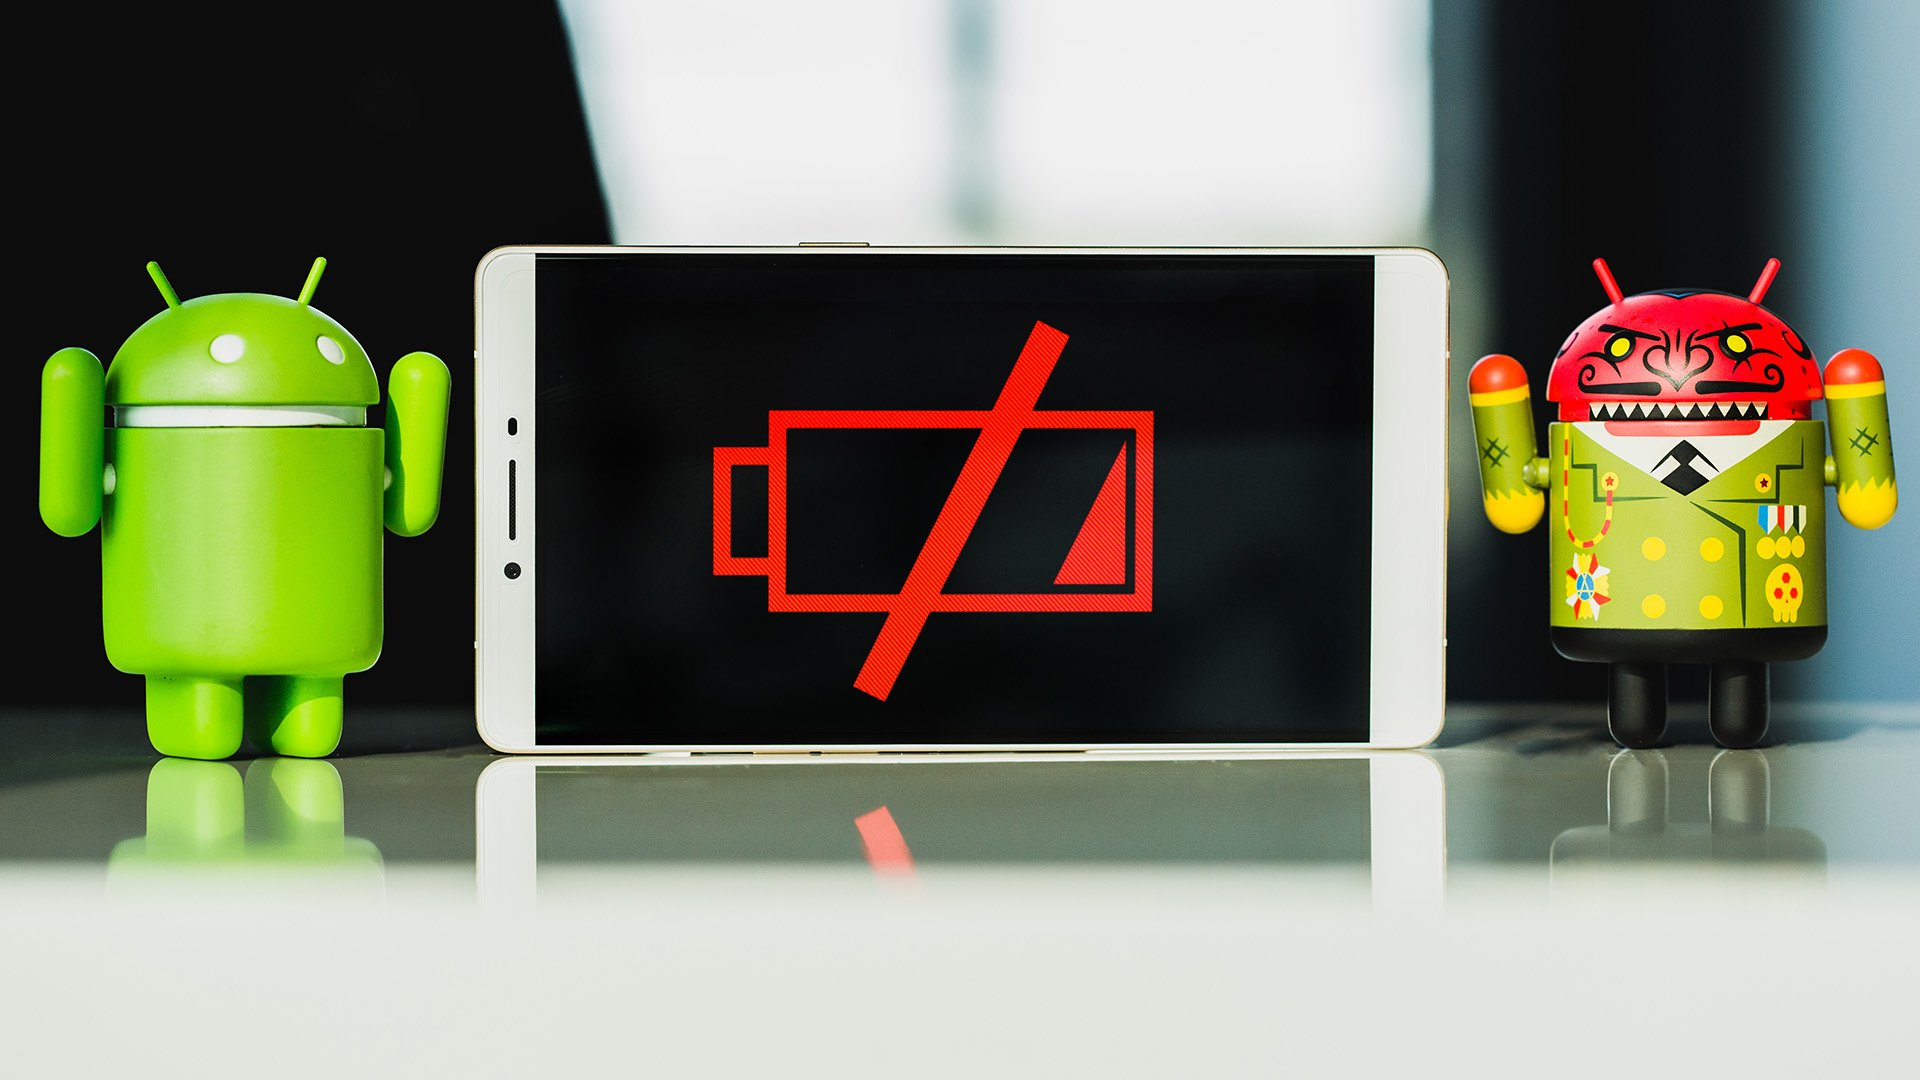 7 tips for maximizing battery life on your smartphone | AndroidPIT